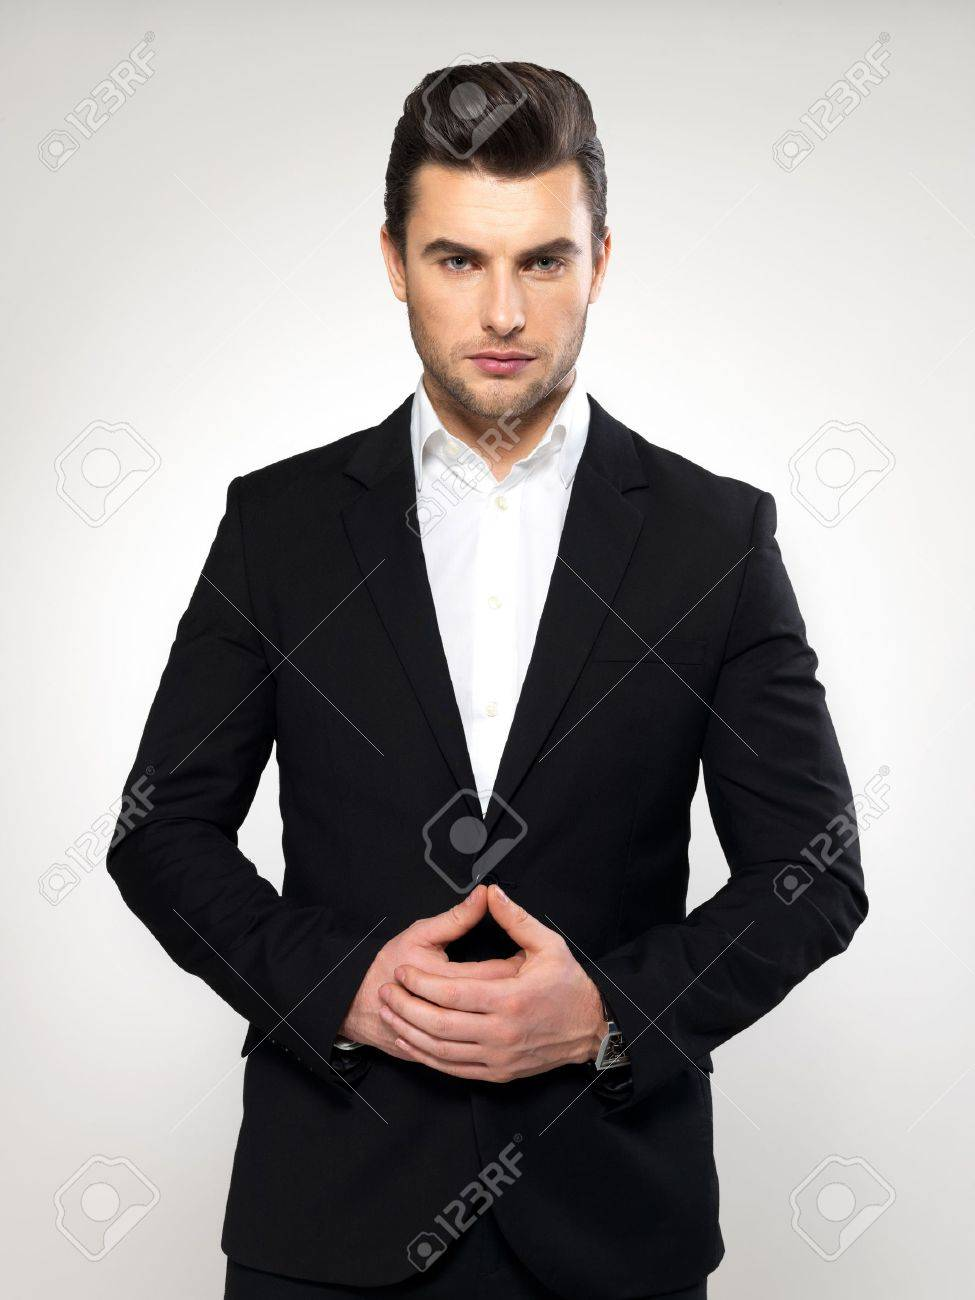 Fashion Young Businessman Black Suit Casual Poses At Studio Stock ...